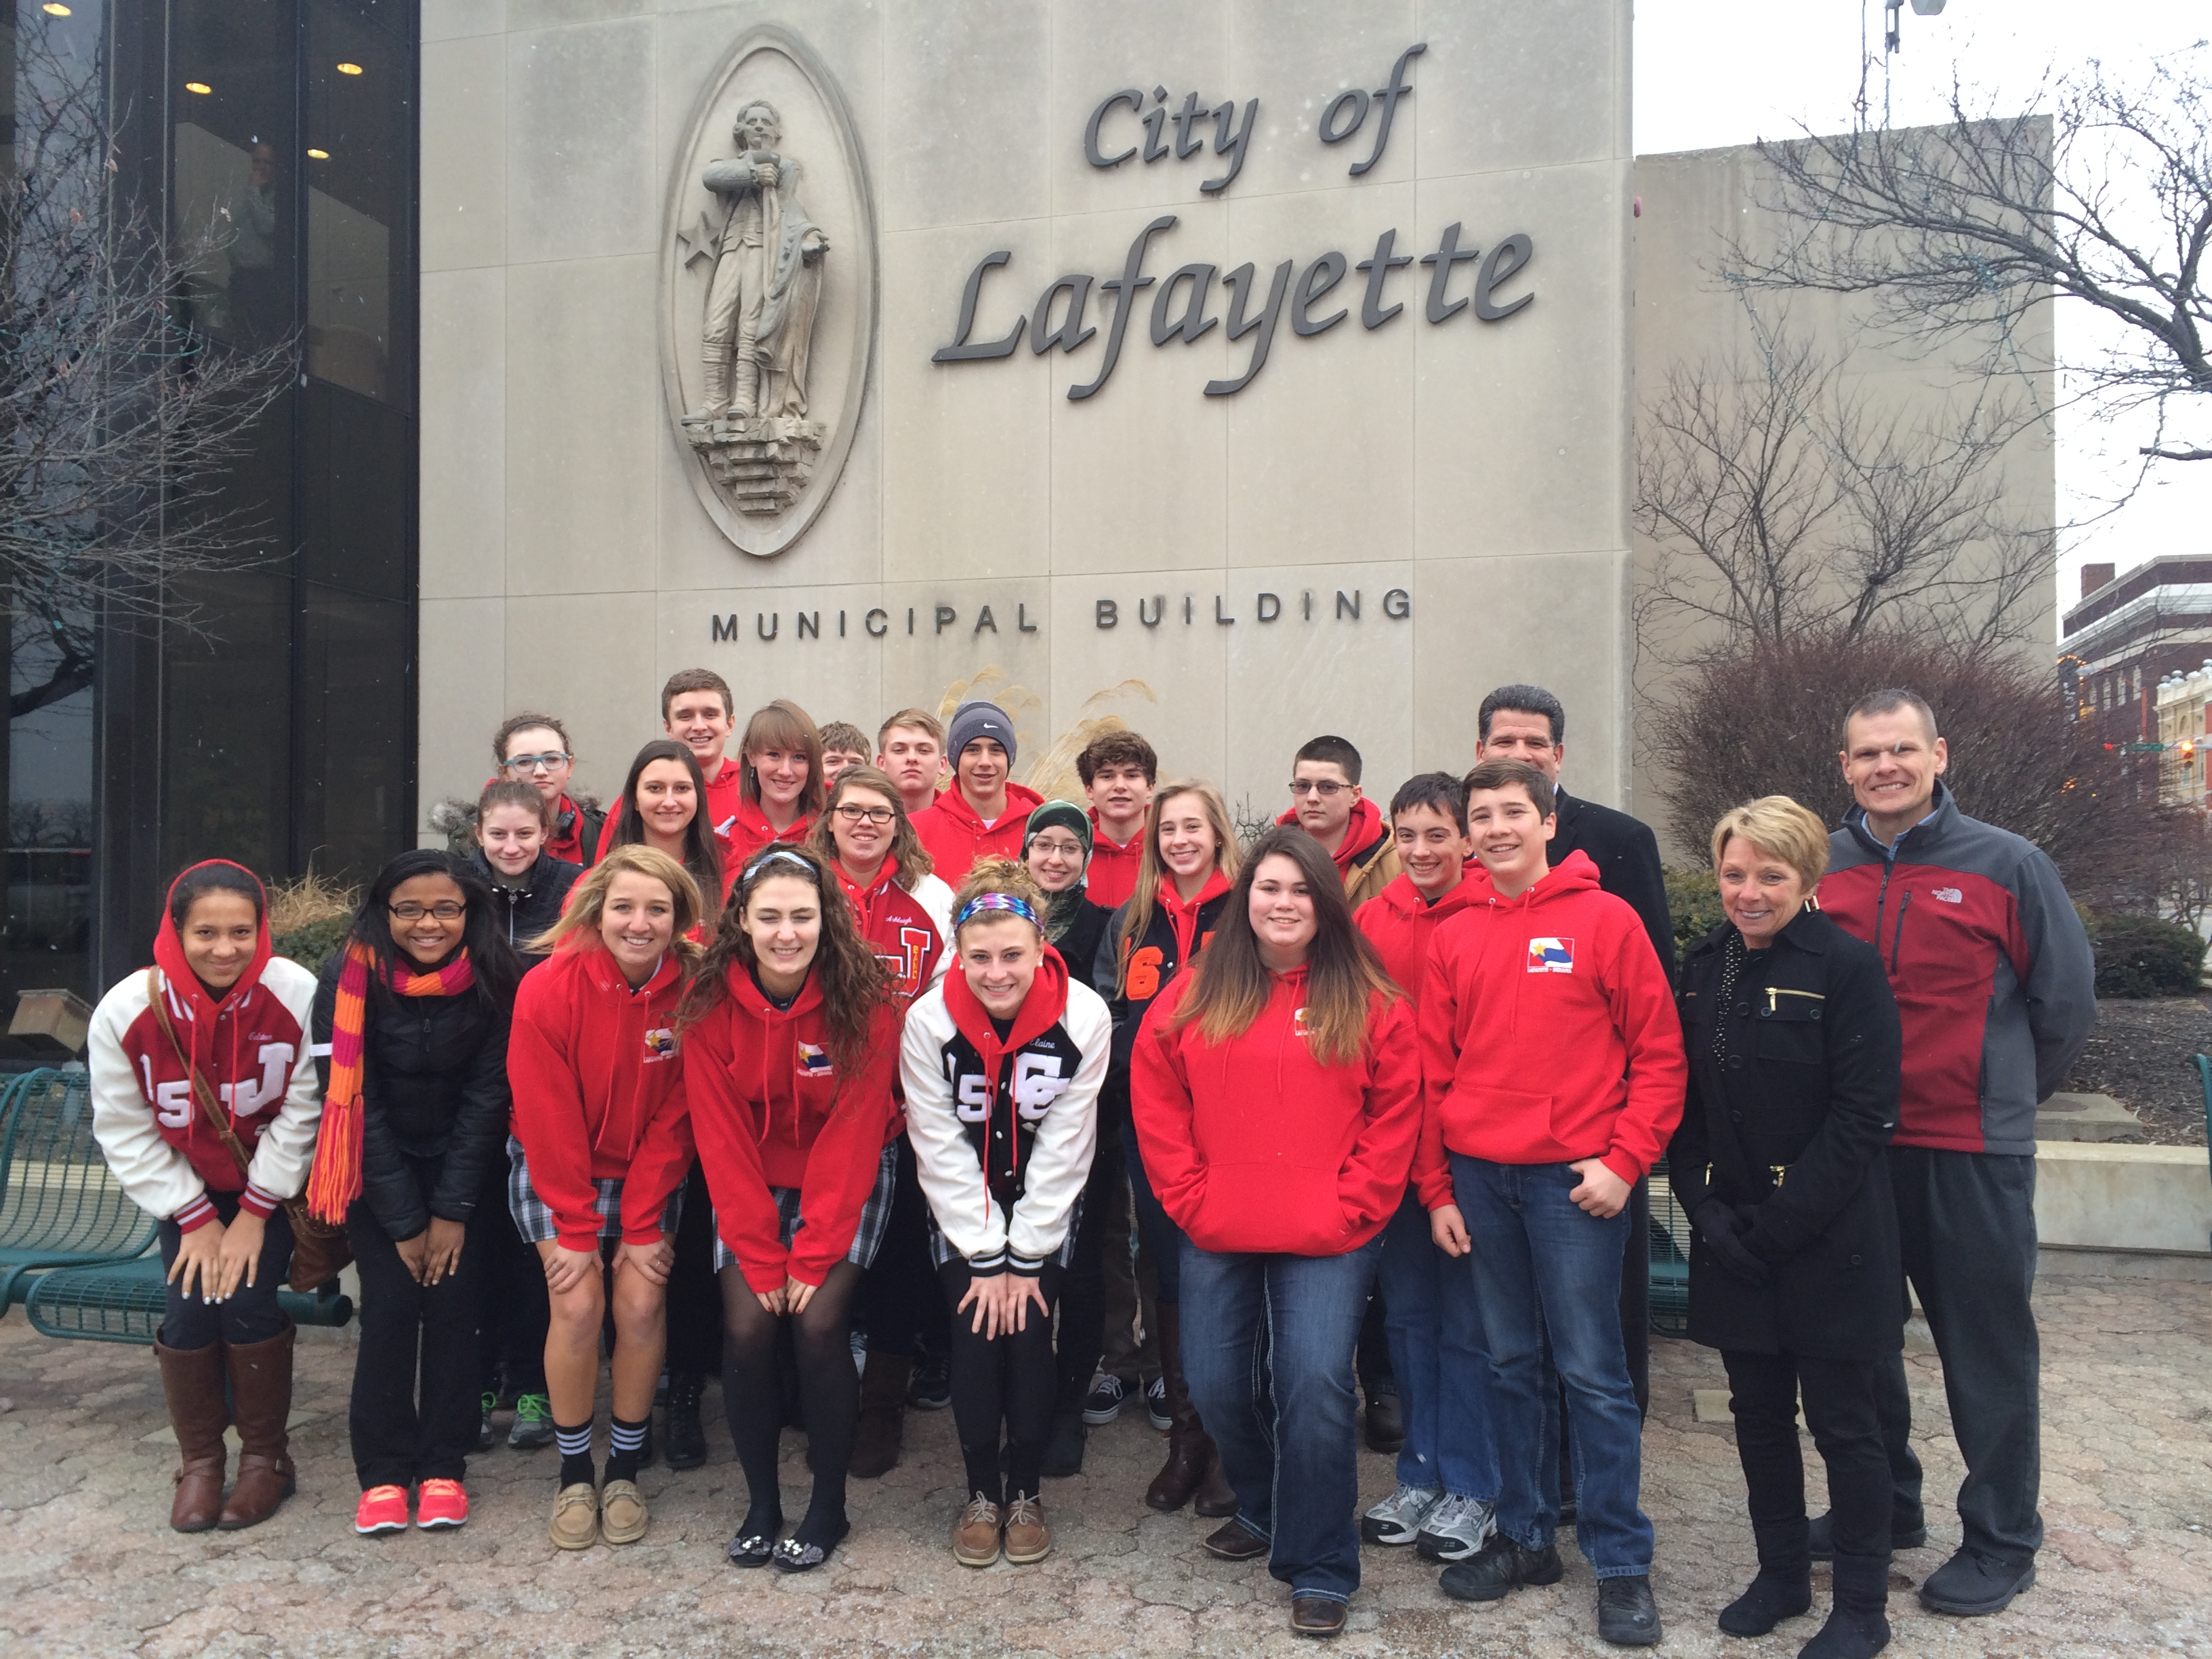 A group of teenagers standing in fron of the City of Lafayette sign